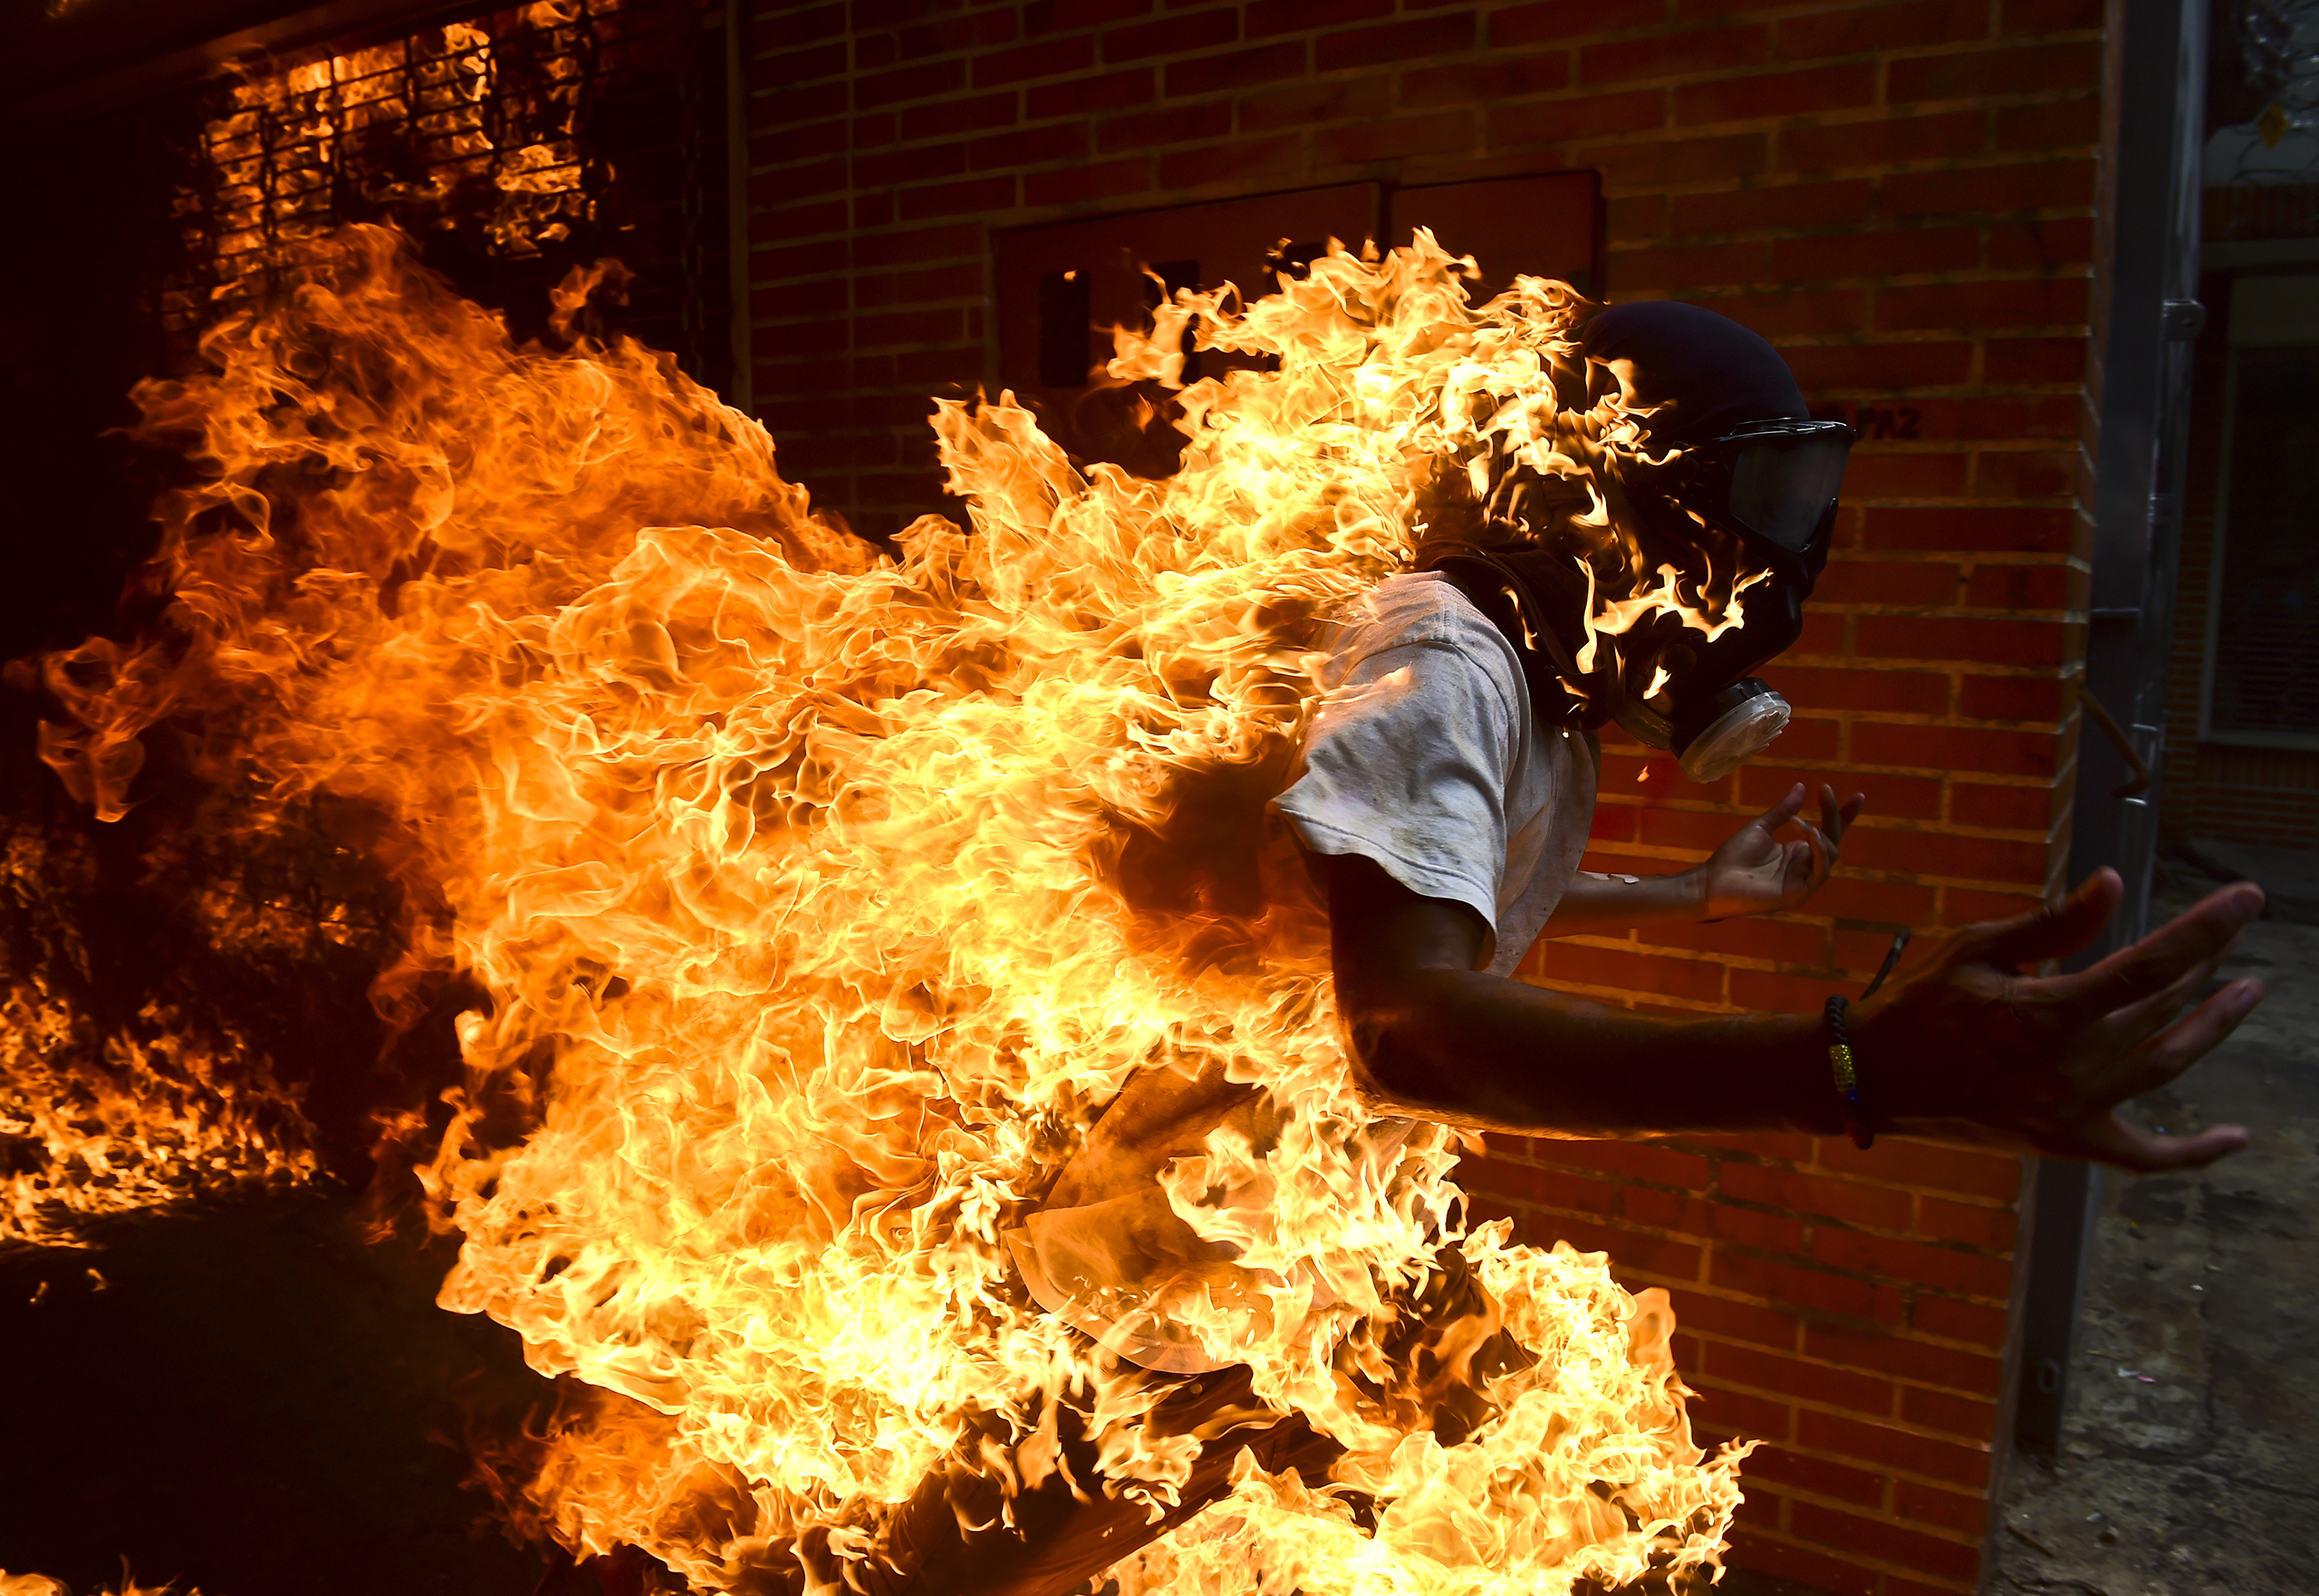 A demonstrator set ablaze runs during an anti-Maduro protest in Caracas on May 3, 2017.